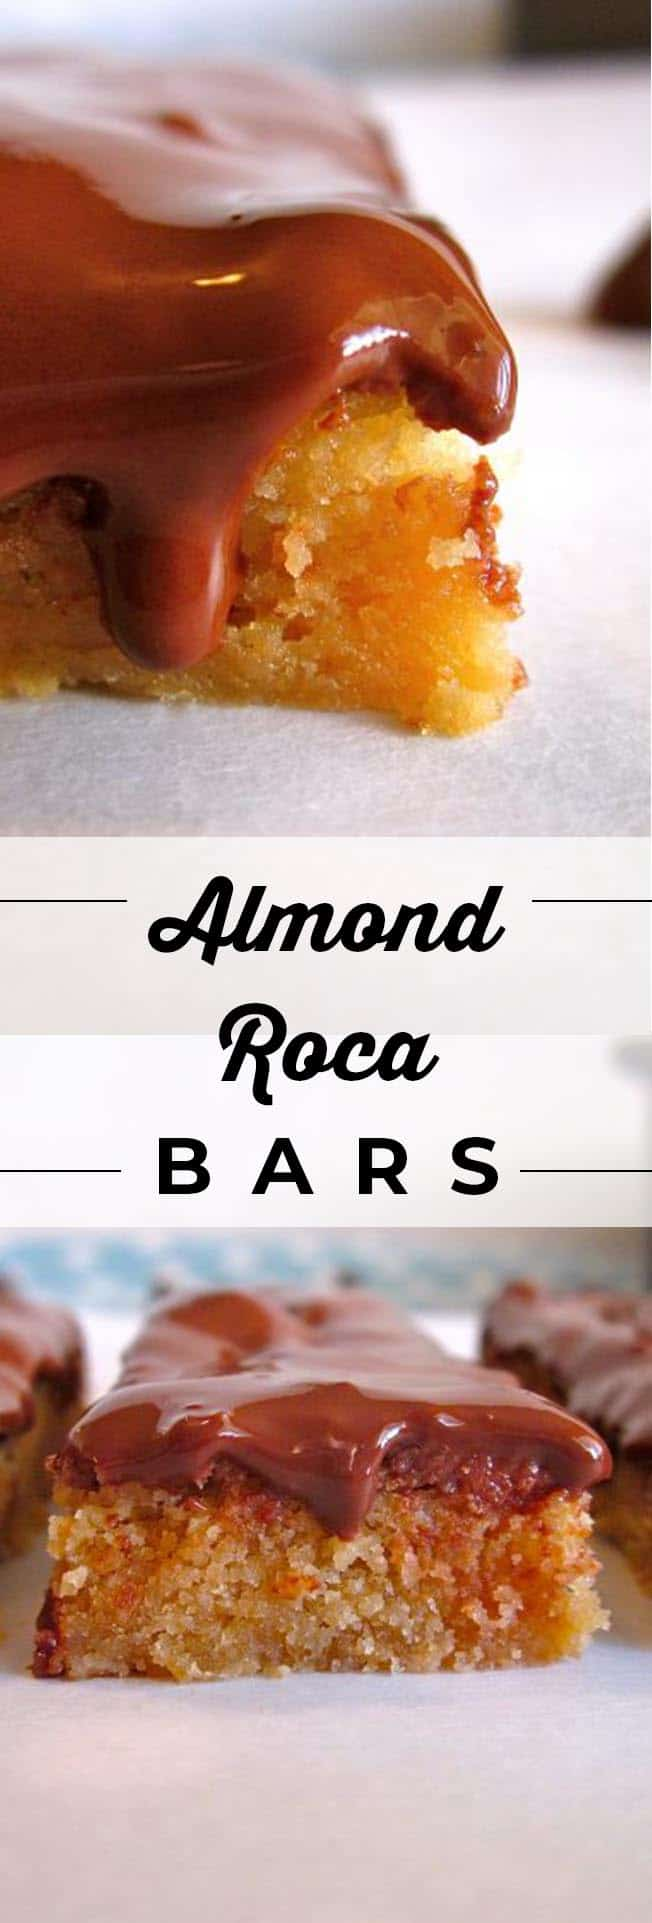 almond roca bars